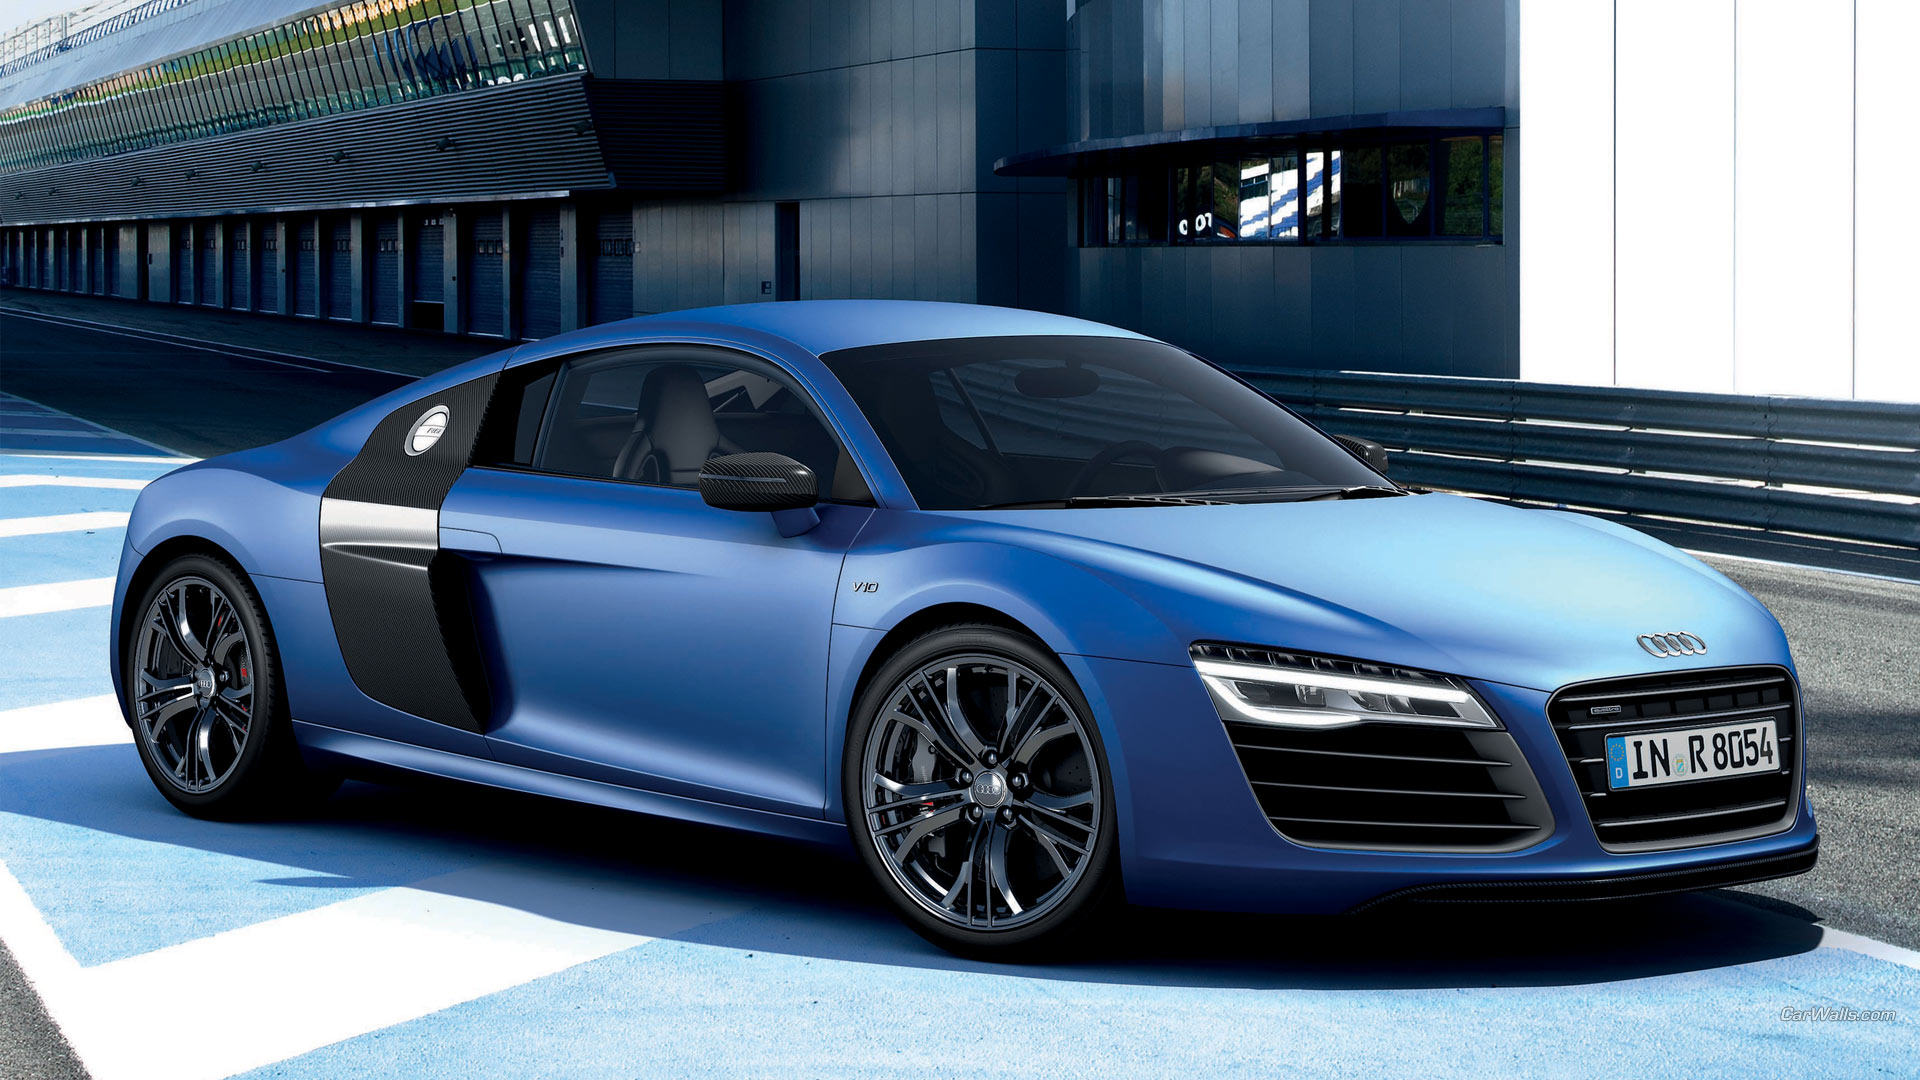 2013 Audi R8 V10 Plus Full HD Wallpaper And Background Image